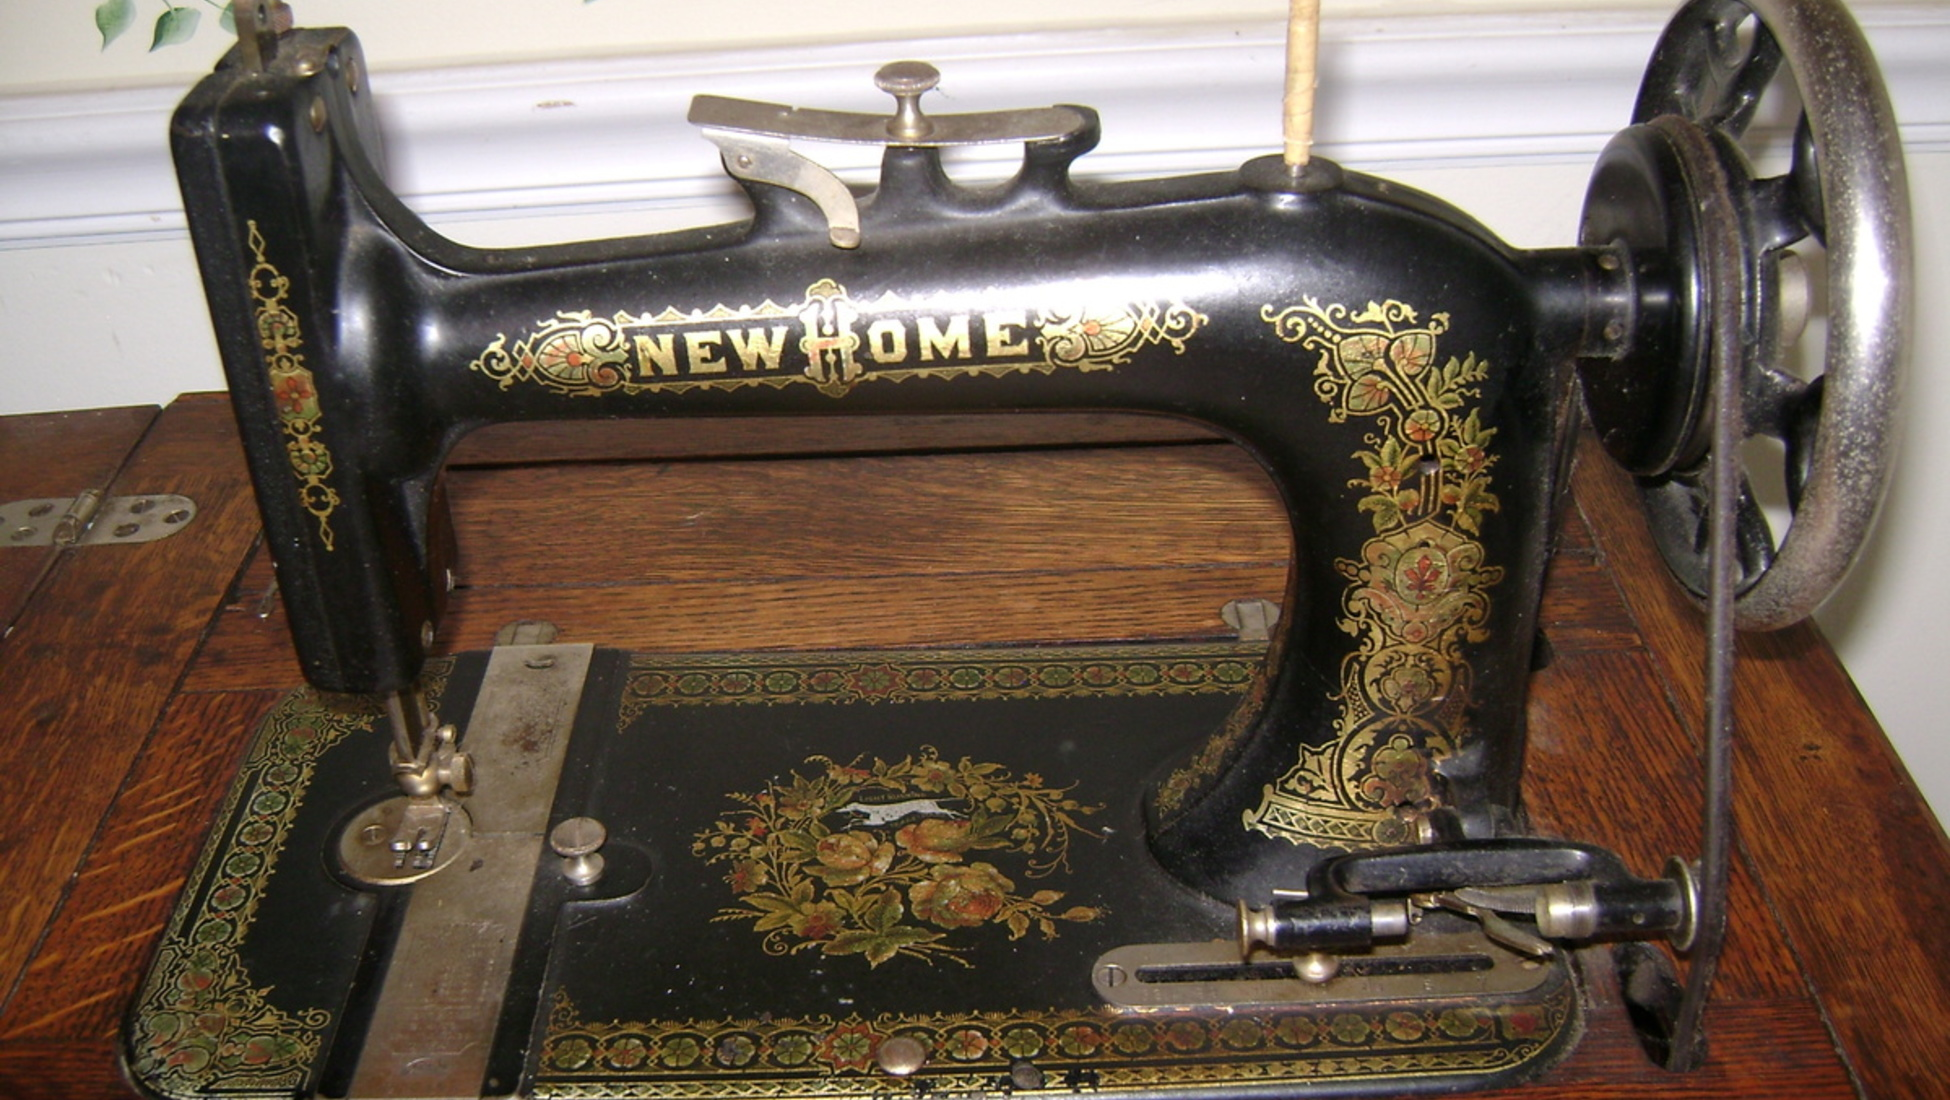 They ceased production in 1955 but made a wide variety of sewing machine  types including hand cranked machines, the Parlor Cabinet Treadle and  'Number Four' ...